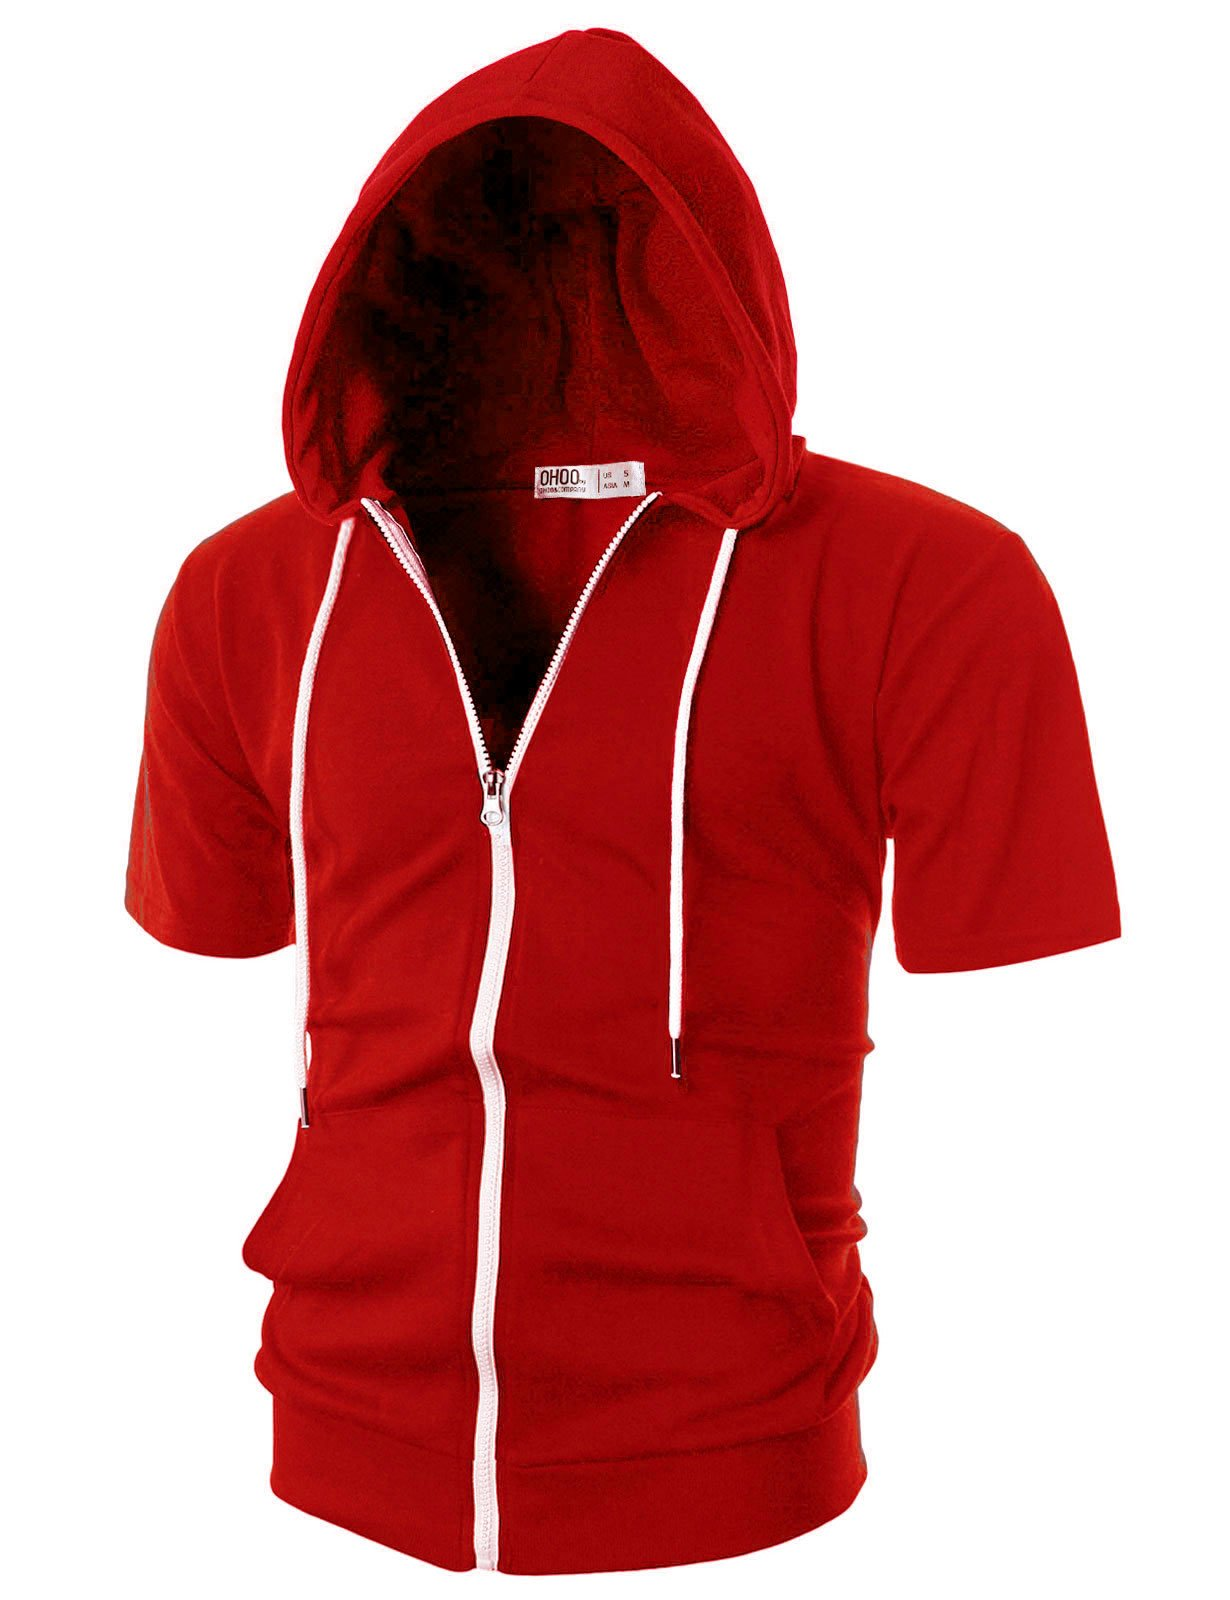 Ohoo Mens Slim Fit Short Sleeve Lightweight Zip-up Hoodie with Kanga Pocket/DCF007-RED-L